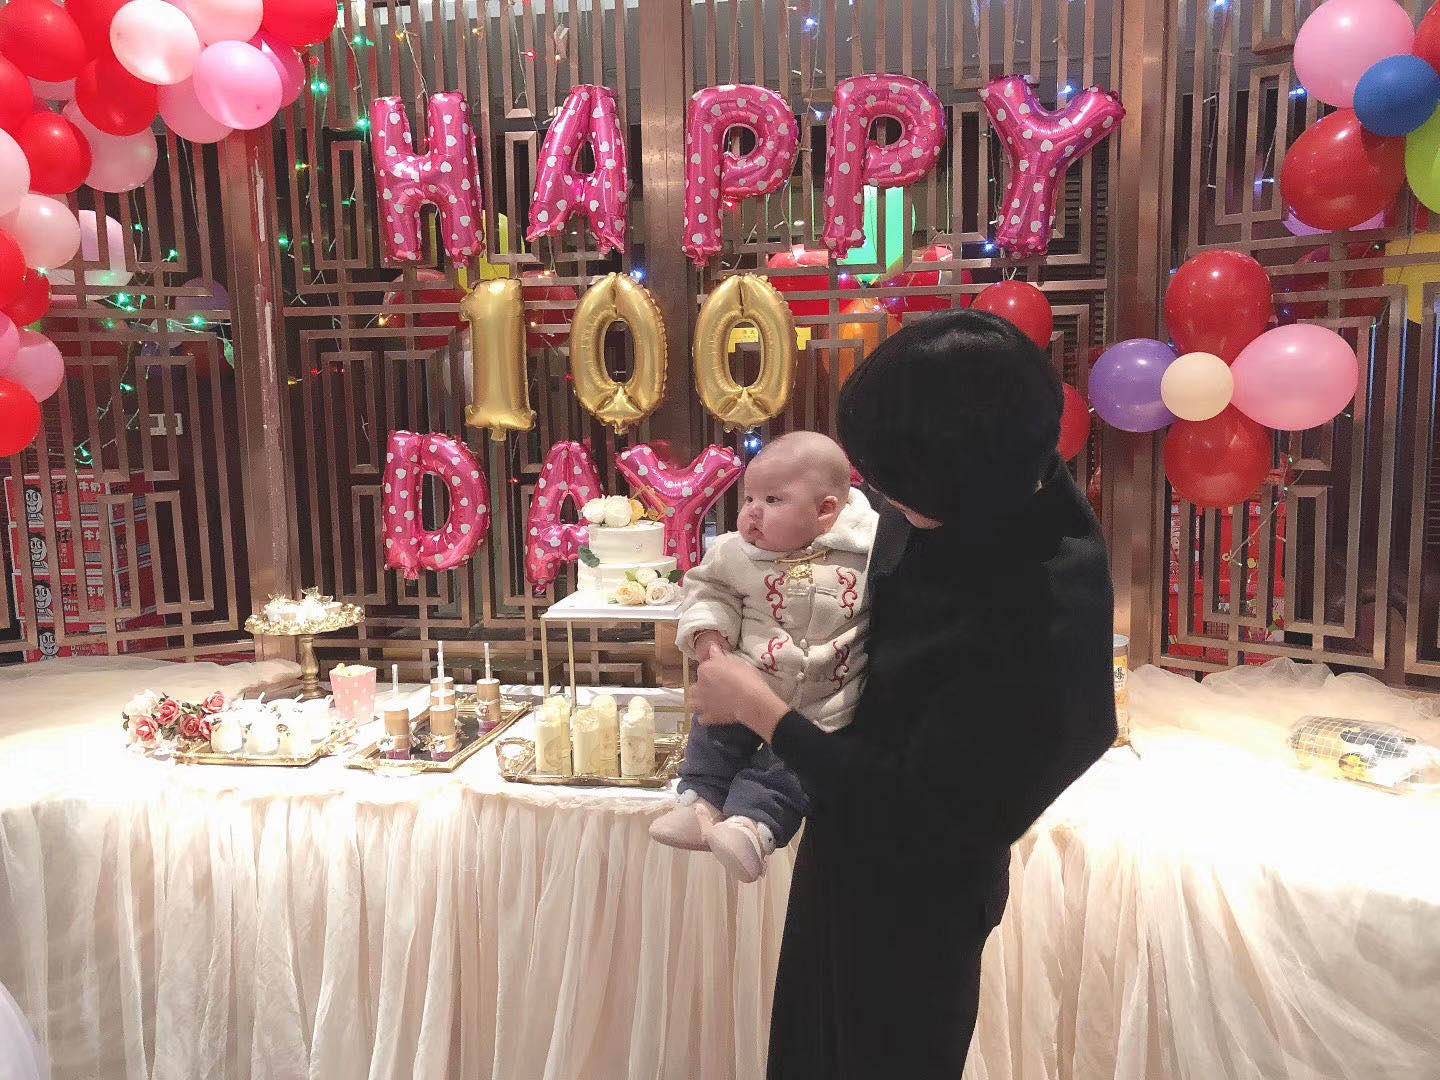 A celebration for baby's 100days from being born.